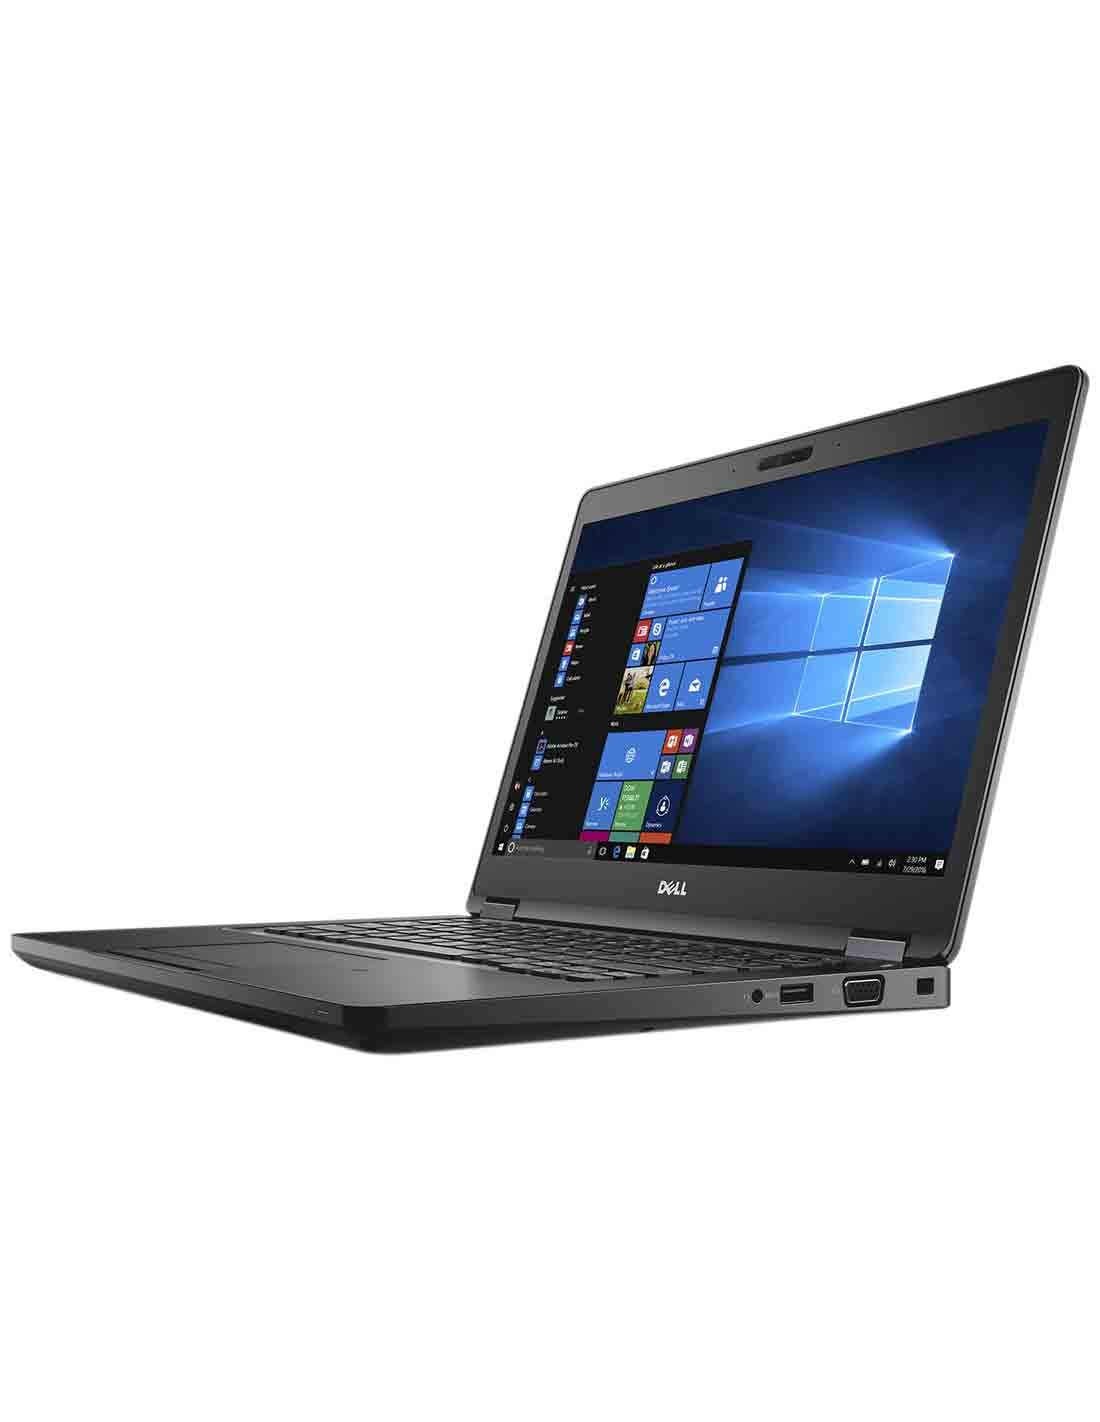 Dell Latitude 5480 Notebook i5 images and photos in Dubai computer store